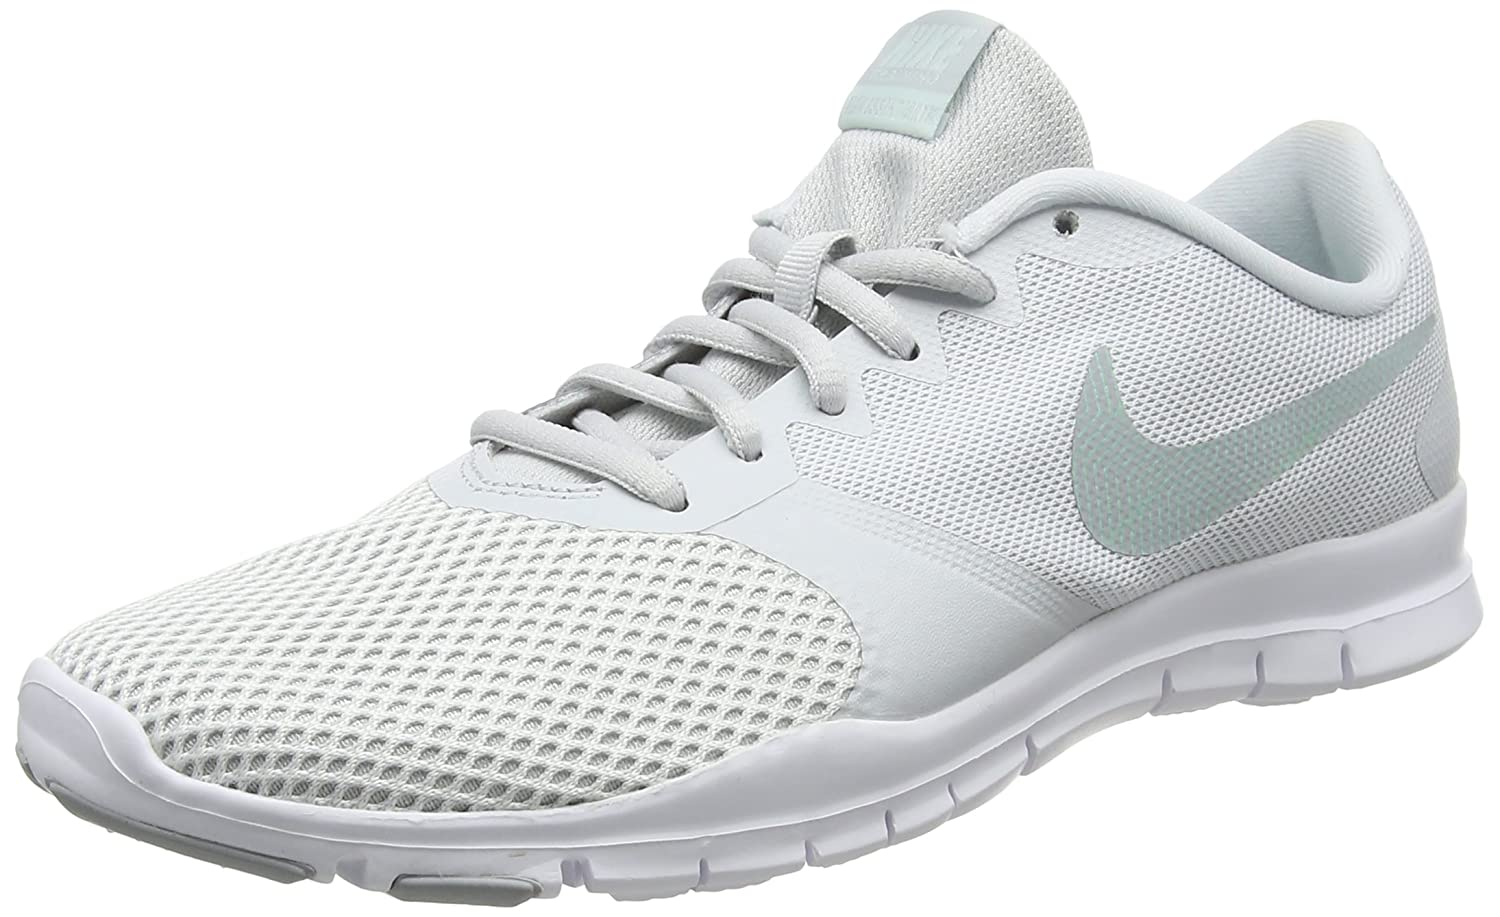 NIKE Women's Flex Essential Tr Training Shoe B07CD7WR9C 6.5|Pure Platinum/Wolf Grey-igloo